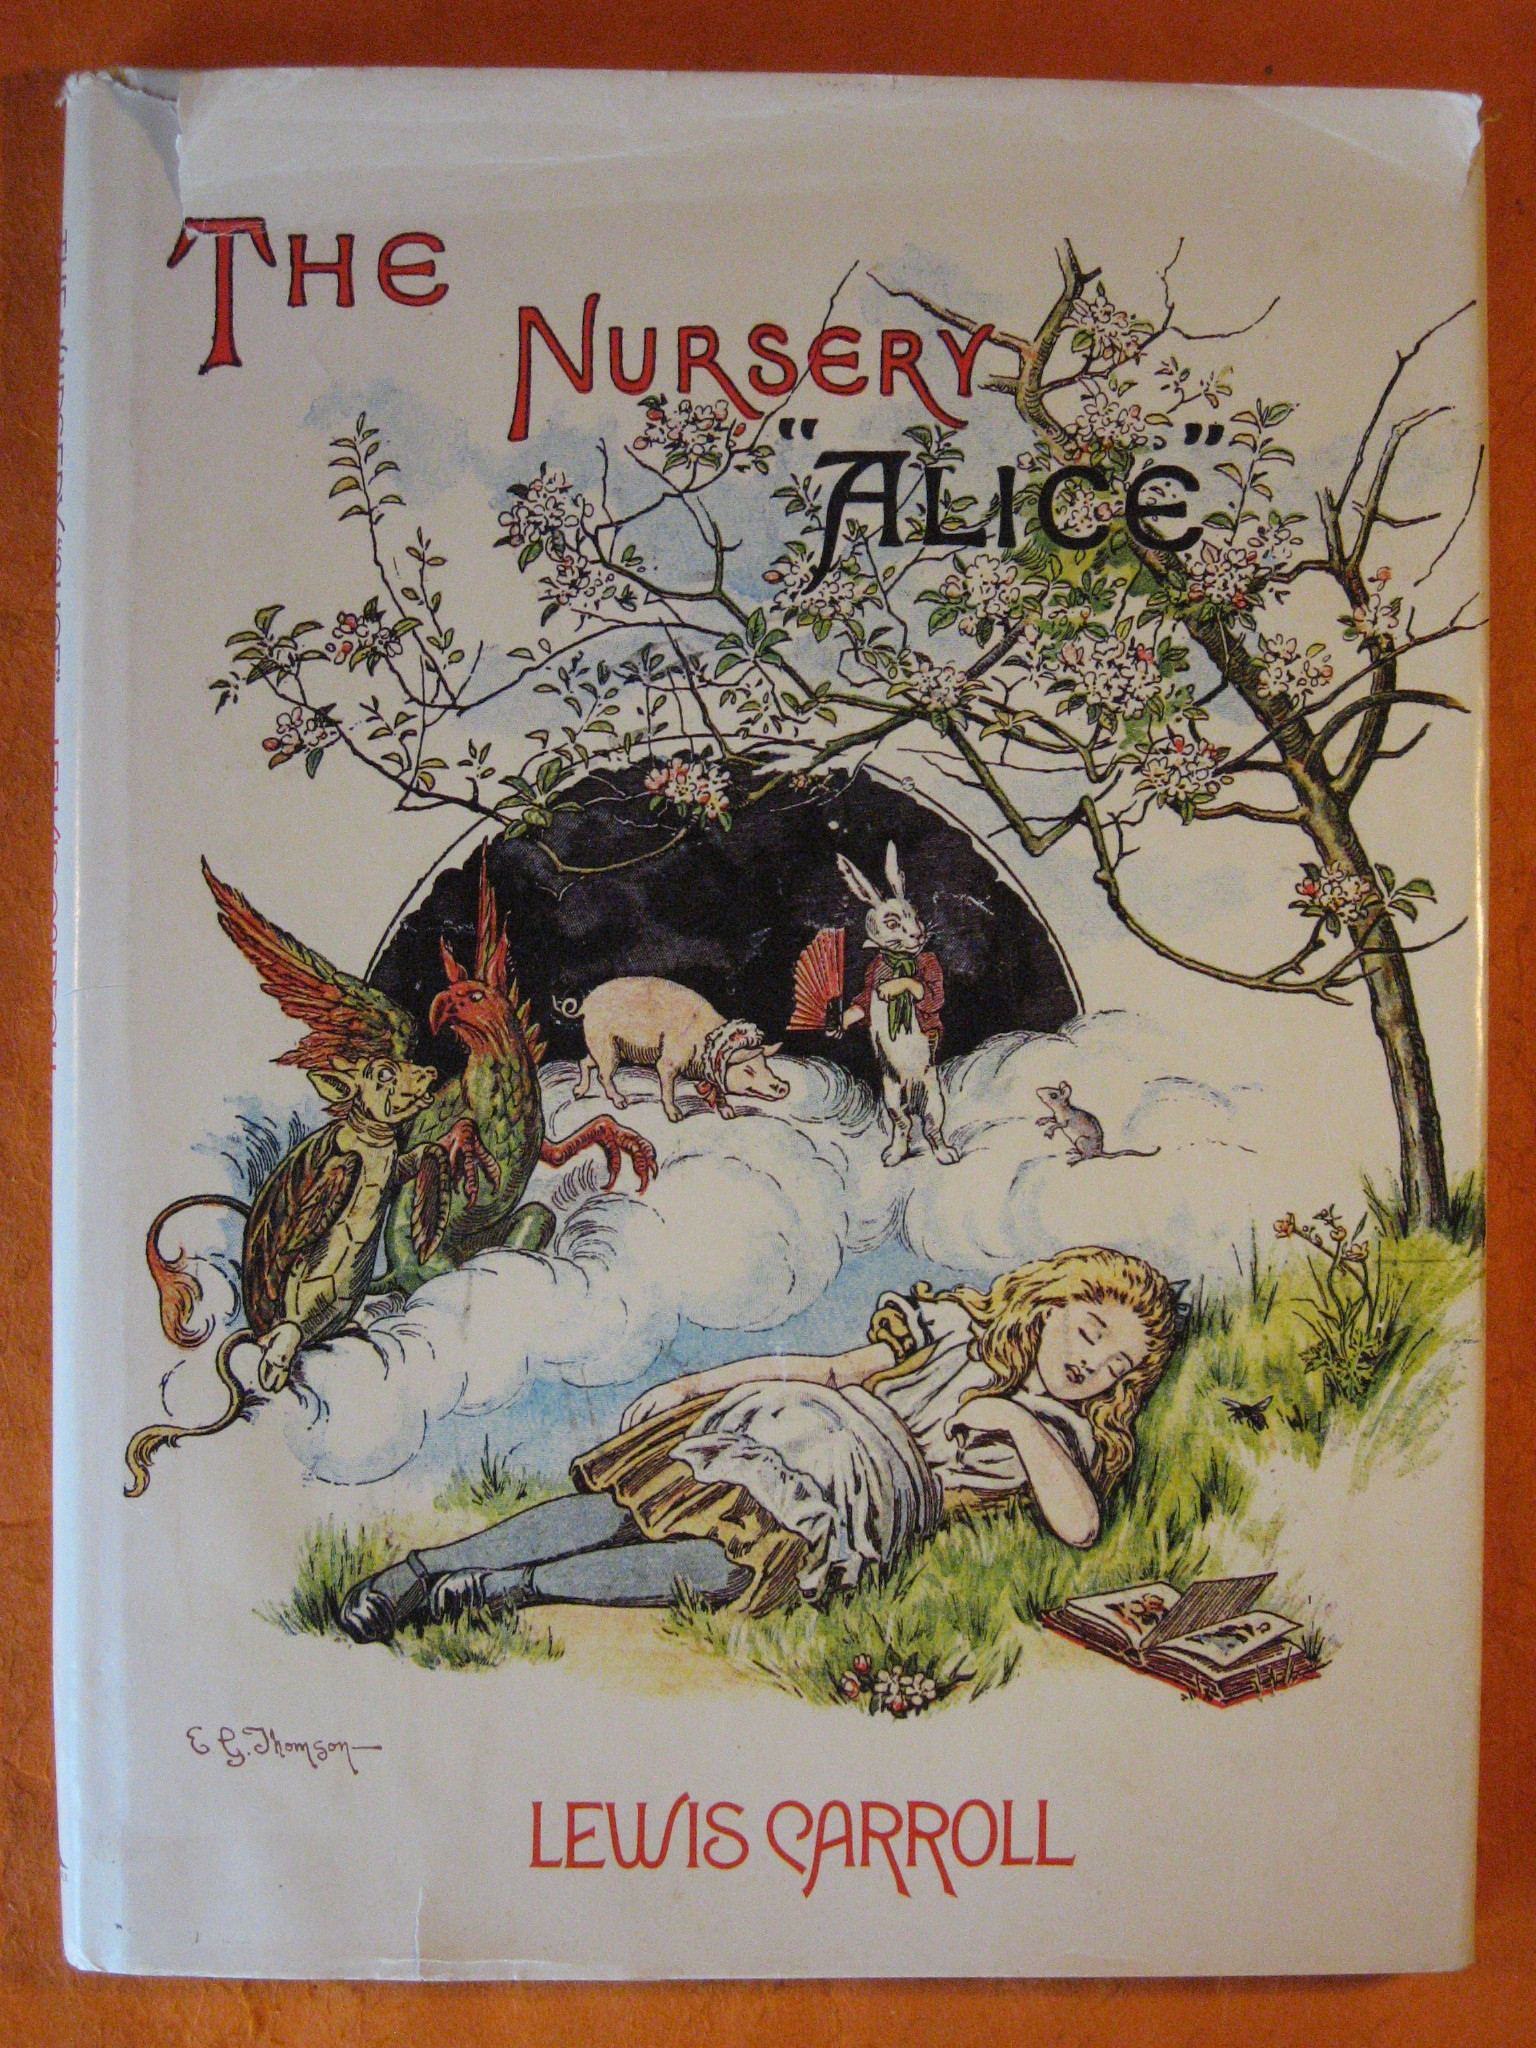 """The Nursery """"Alice"""":  Containing Twenty Coloured Enlargements from Tenniel's Illustrations to 'Alice's Adventures in Wonderland' with Text Adapted to Nursery Readers by Lewis Carroll, Carroll, Lewis"""